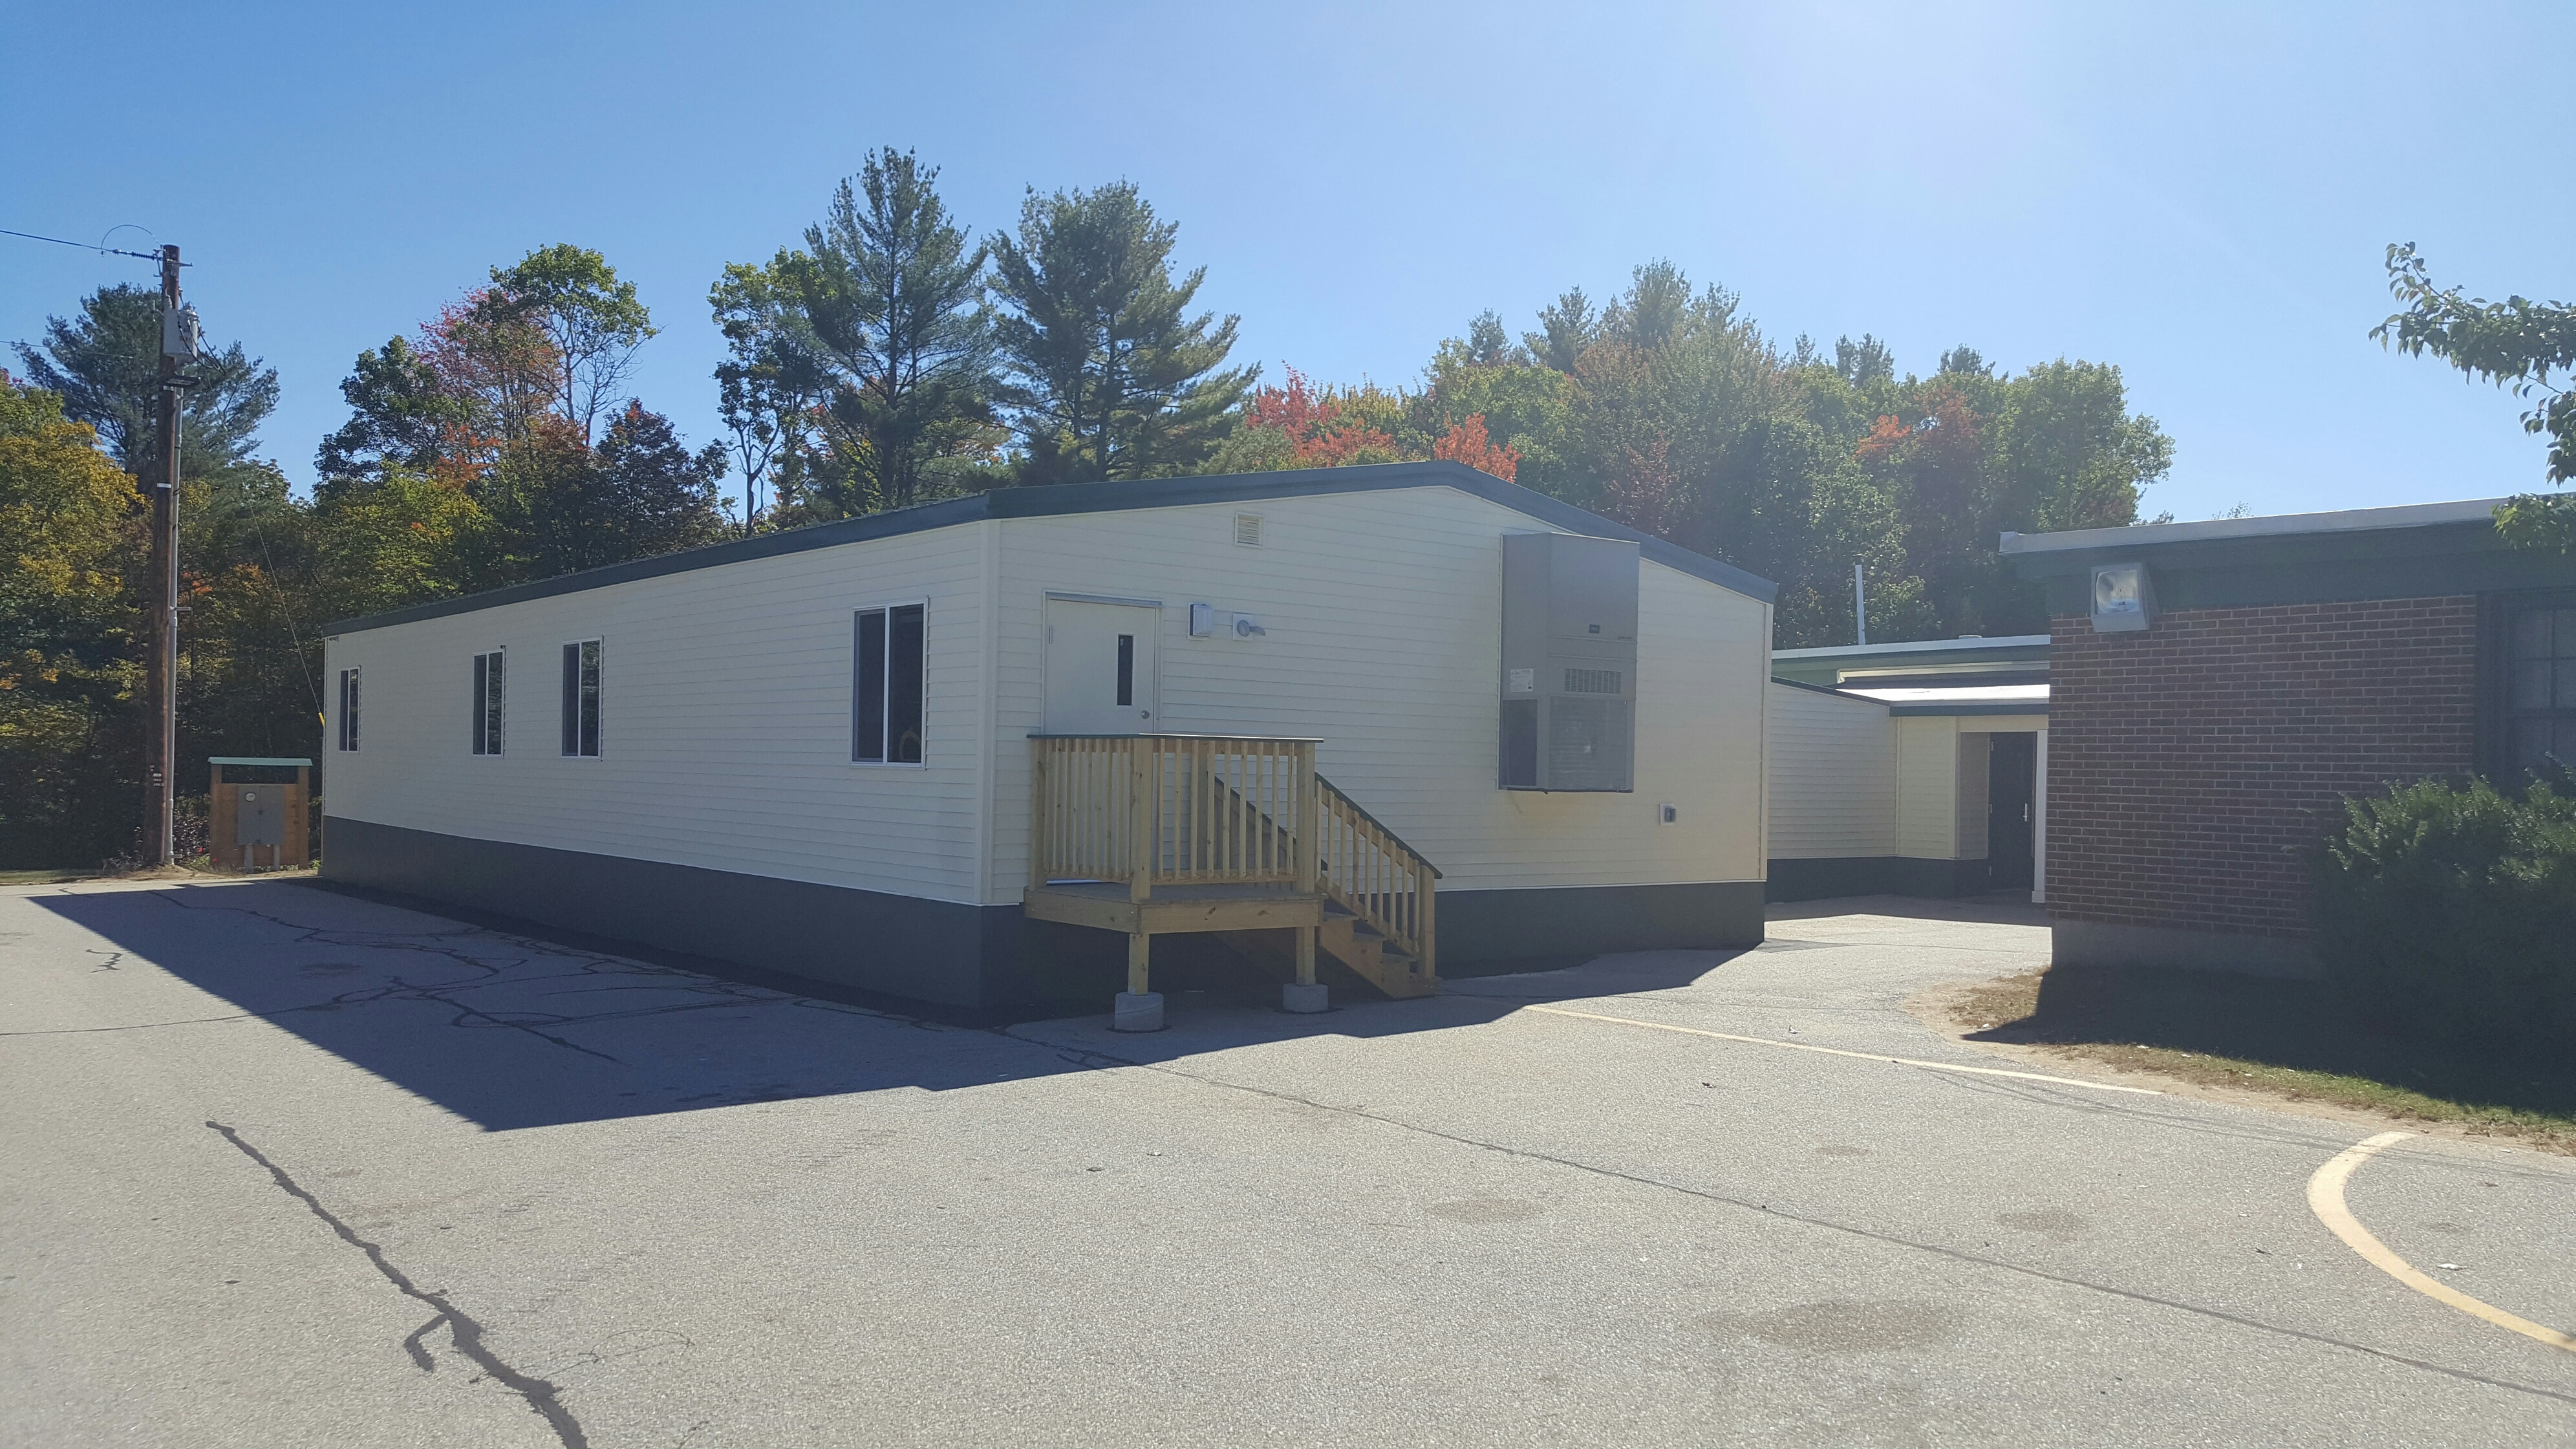 Modular Classroom Nc : Aries building systems llc windham new hampshire proview